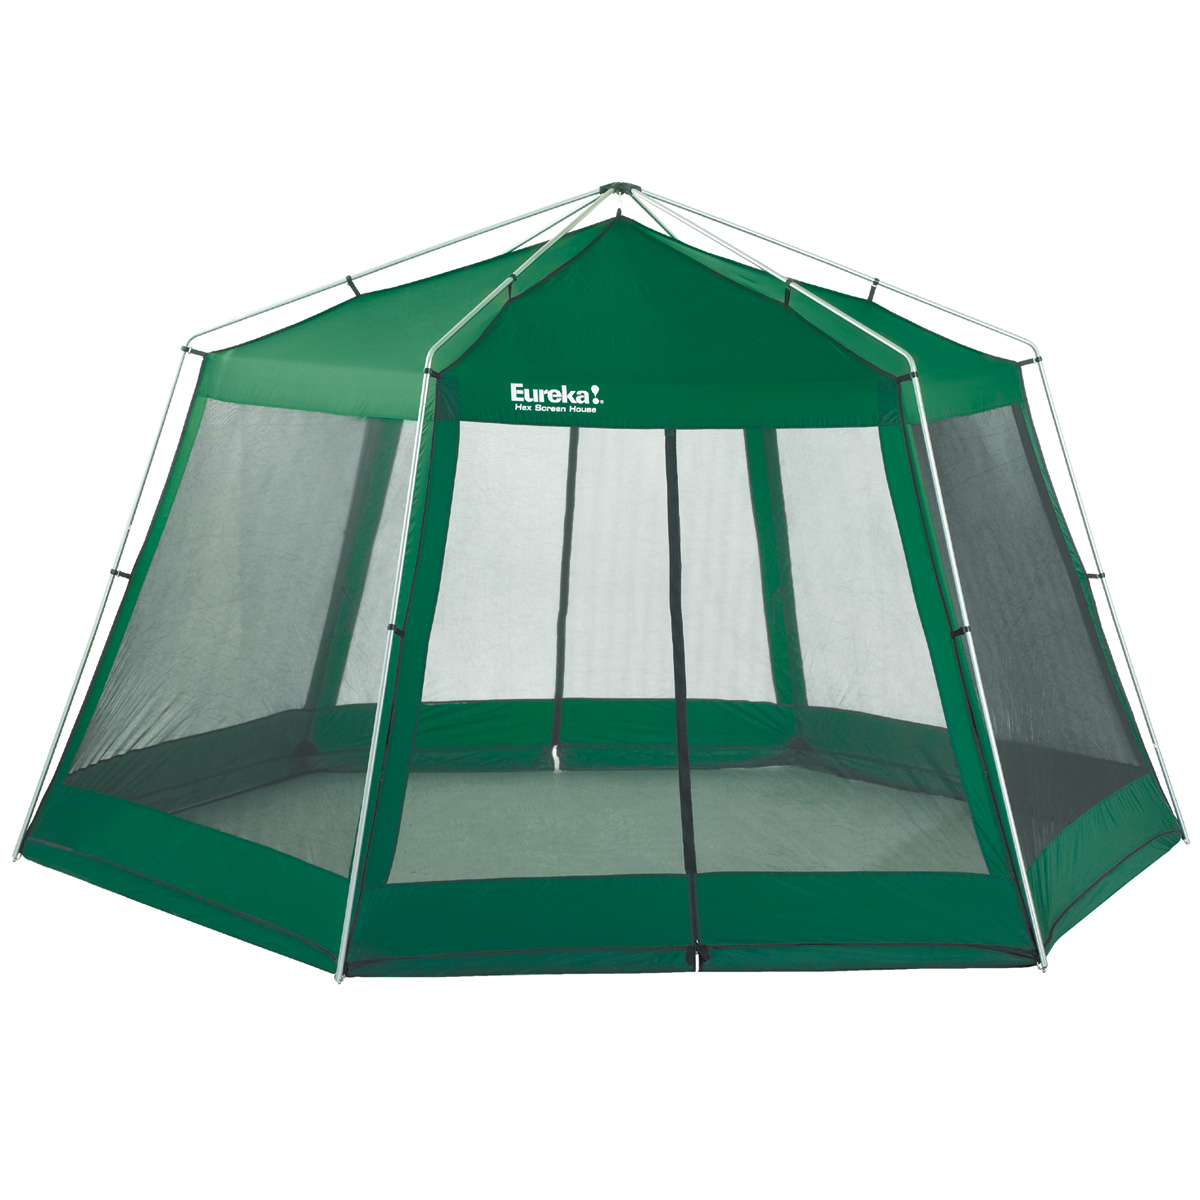 Hexagon Screen House  sc 1 st  Tents - Johnson Outdoors & Hexagon Screen House | Eureka!